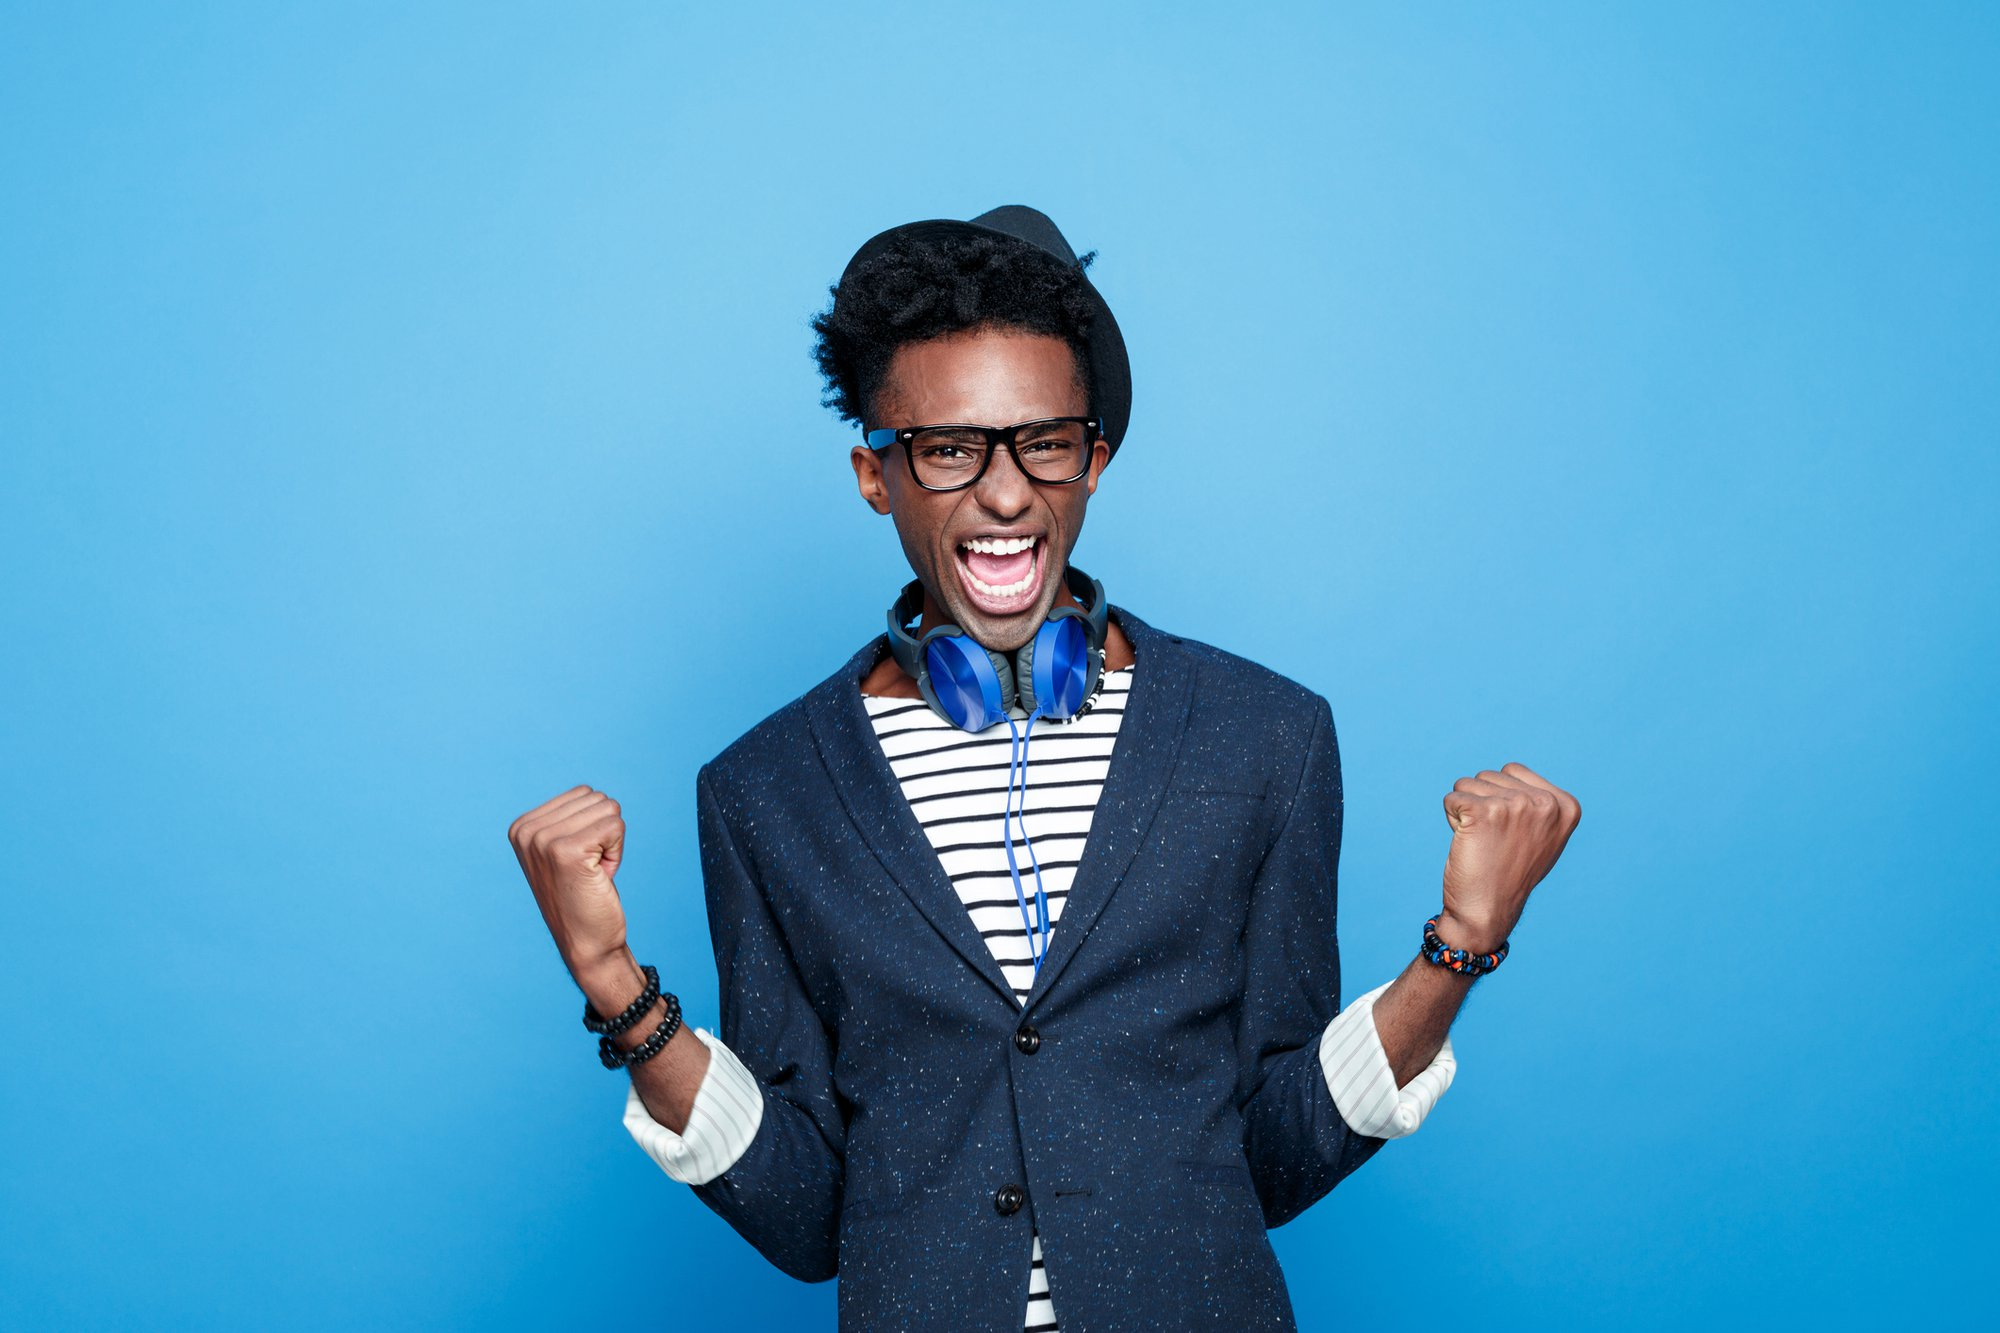 Studio portrait of successful afro american young man wearing striped top, navy blue jacket, nerd glasses, hat and headphone, laughing at camera with raised fists. Studio portrait, blue background.